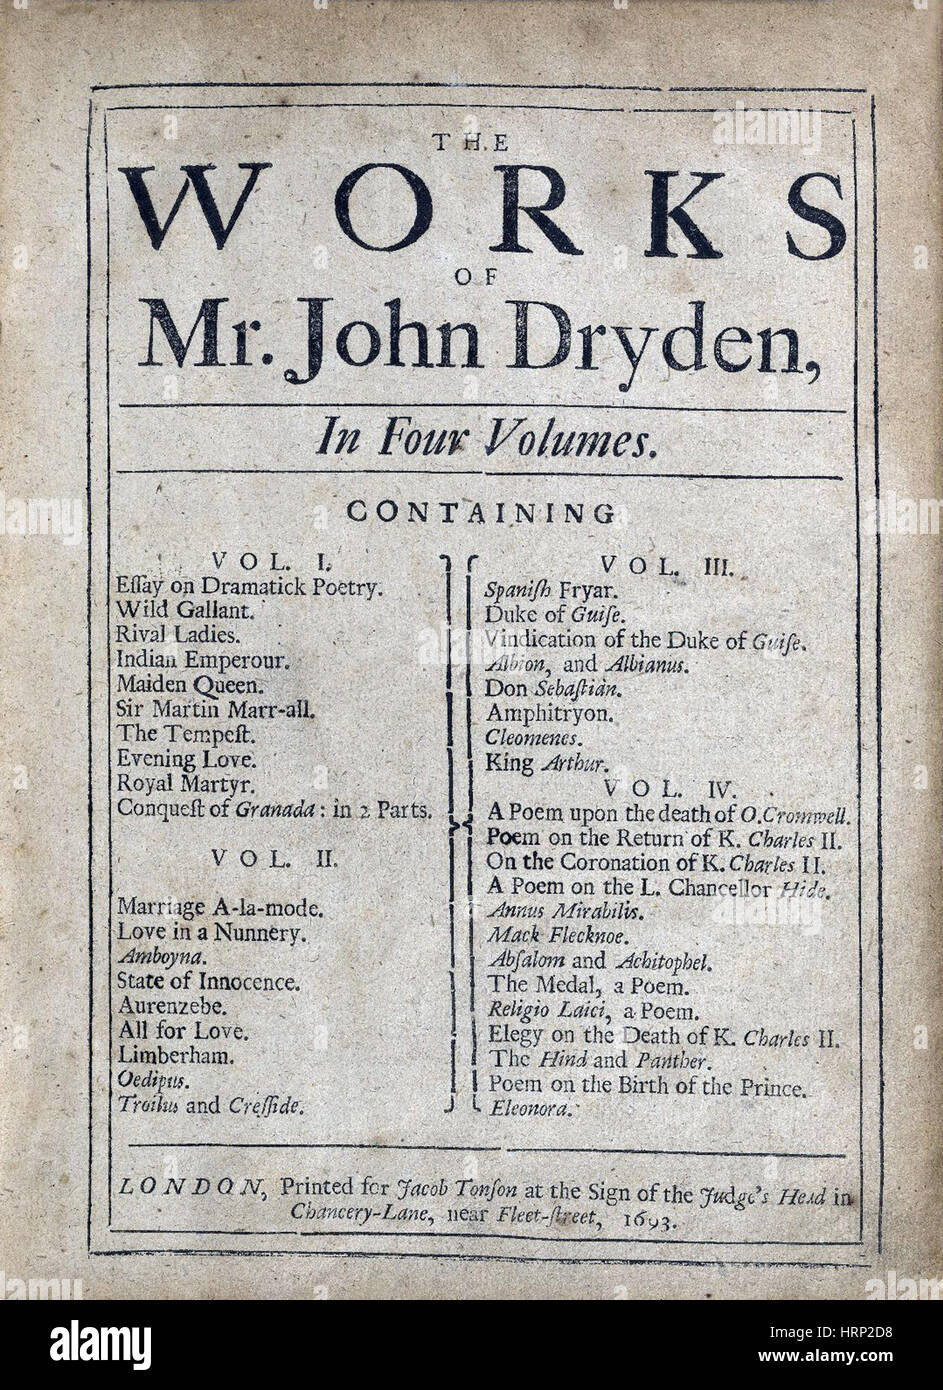 Works of John Dryden, Title Page, 1693 - Stock Image